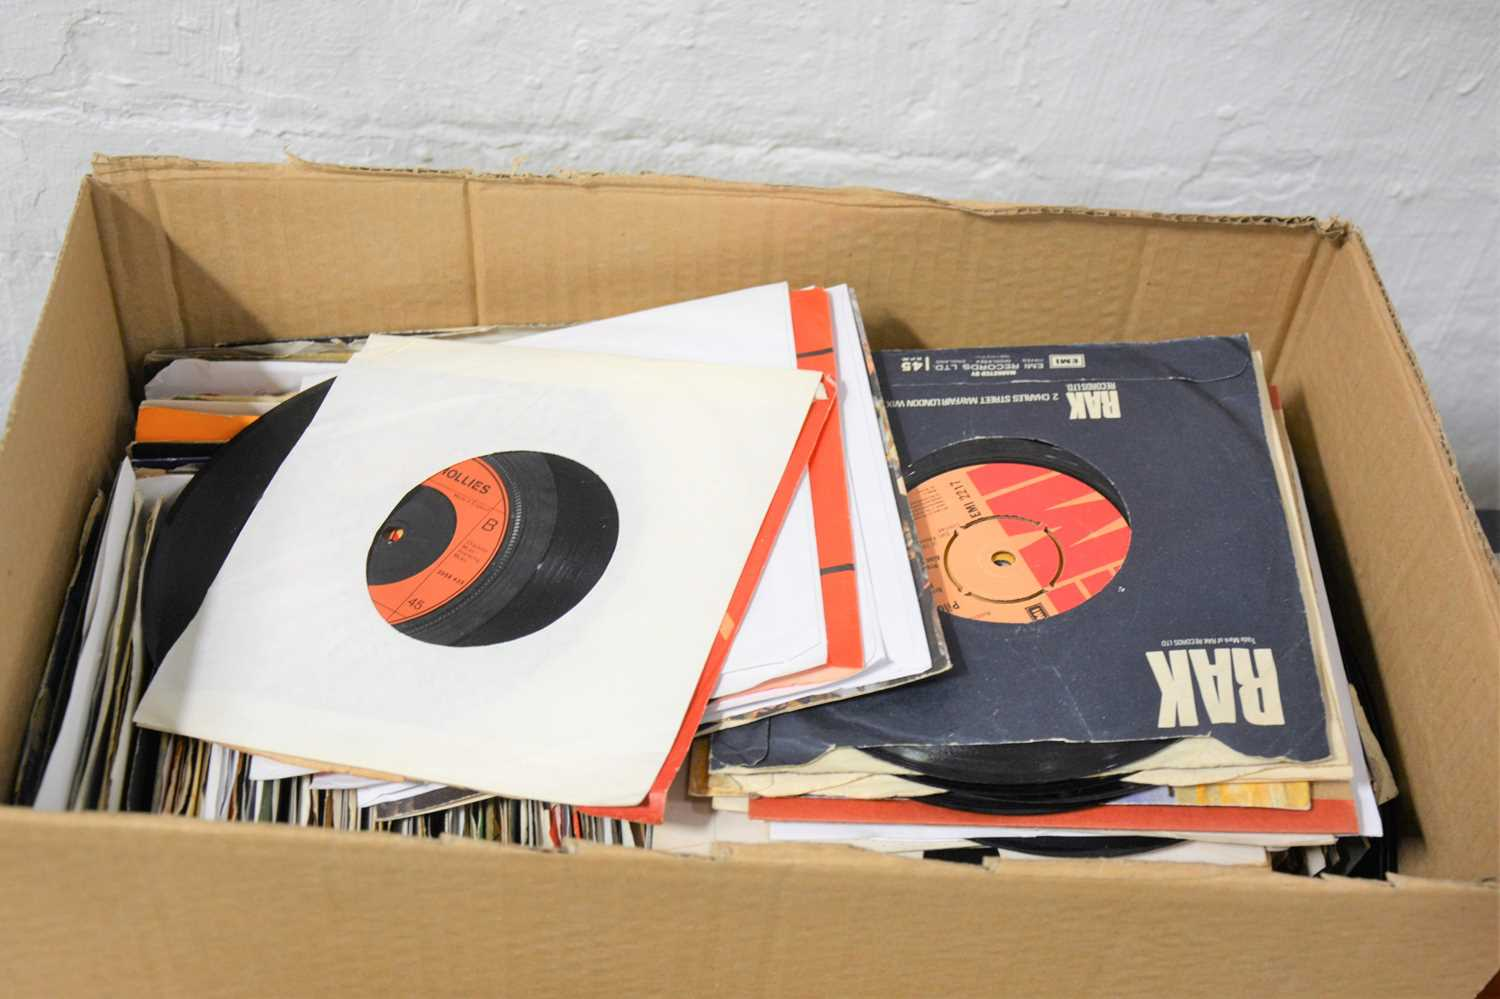 """Lot 41-A box of aprox 250 mixed 7"""" single records, including The Hollies, Lulu, Abba, Dexys Midnight Runners, Ian Matthews, ELO etc."""